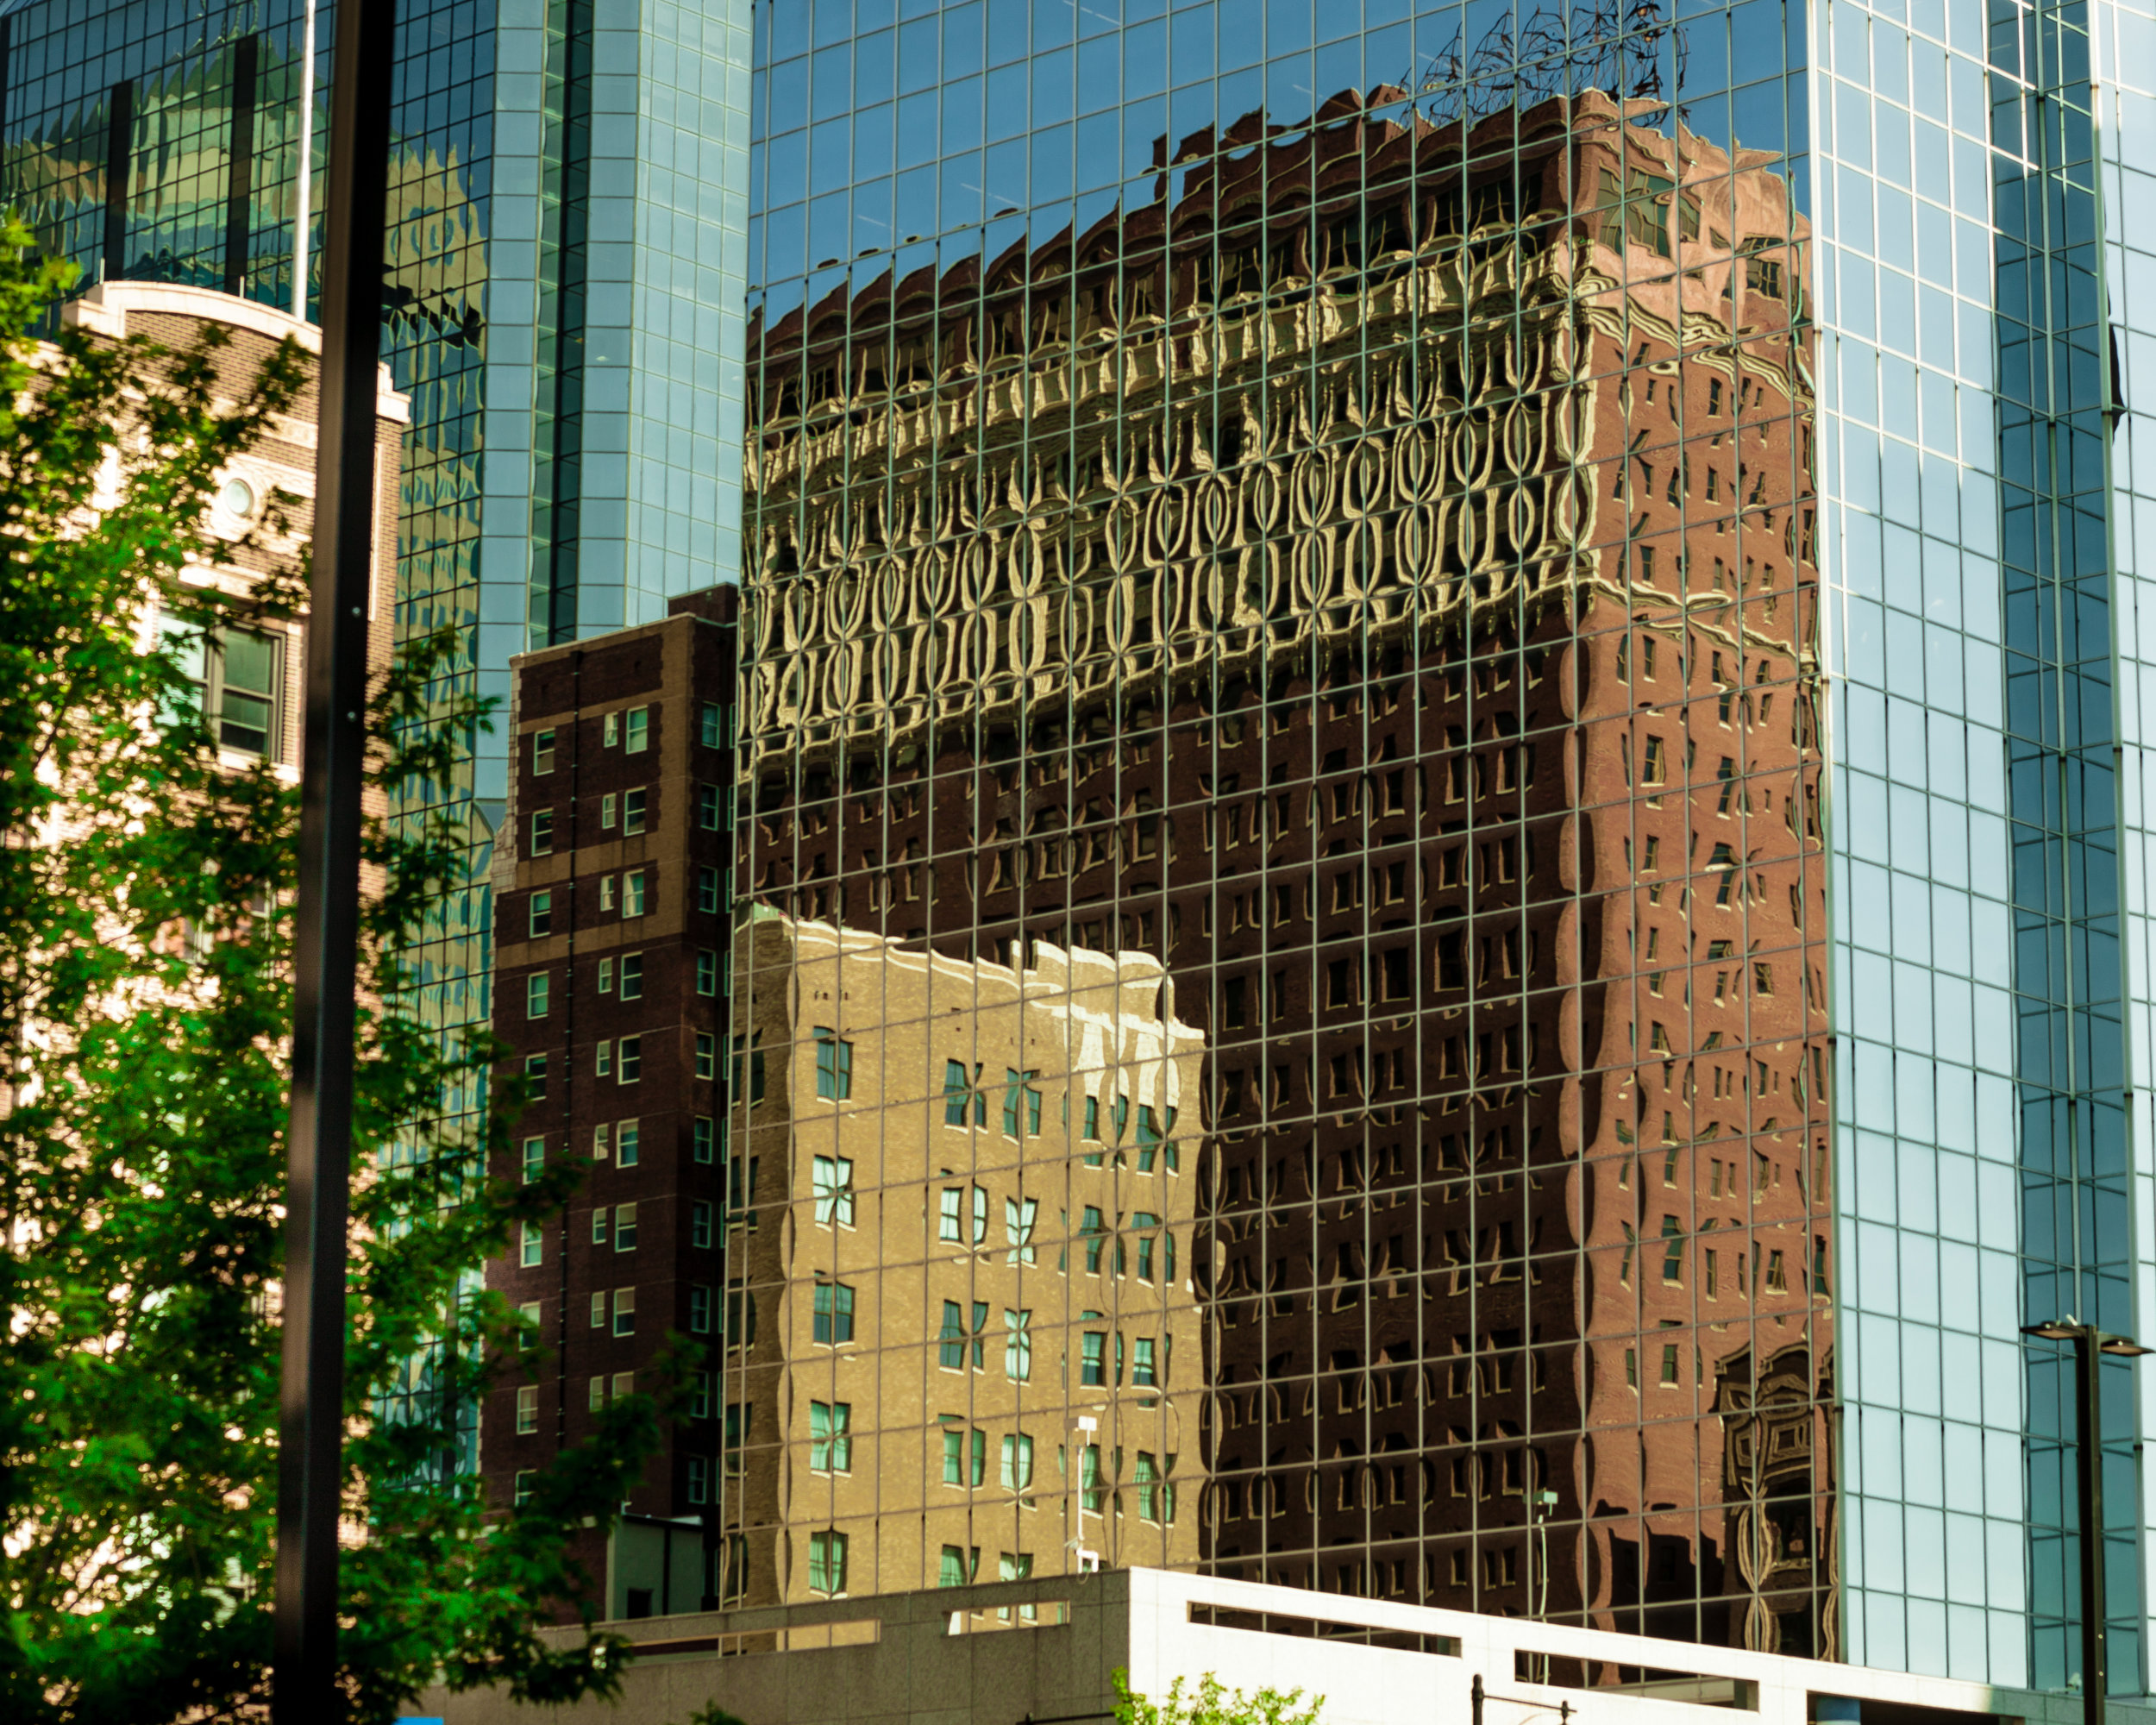 downtown_reflections.jpg